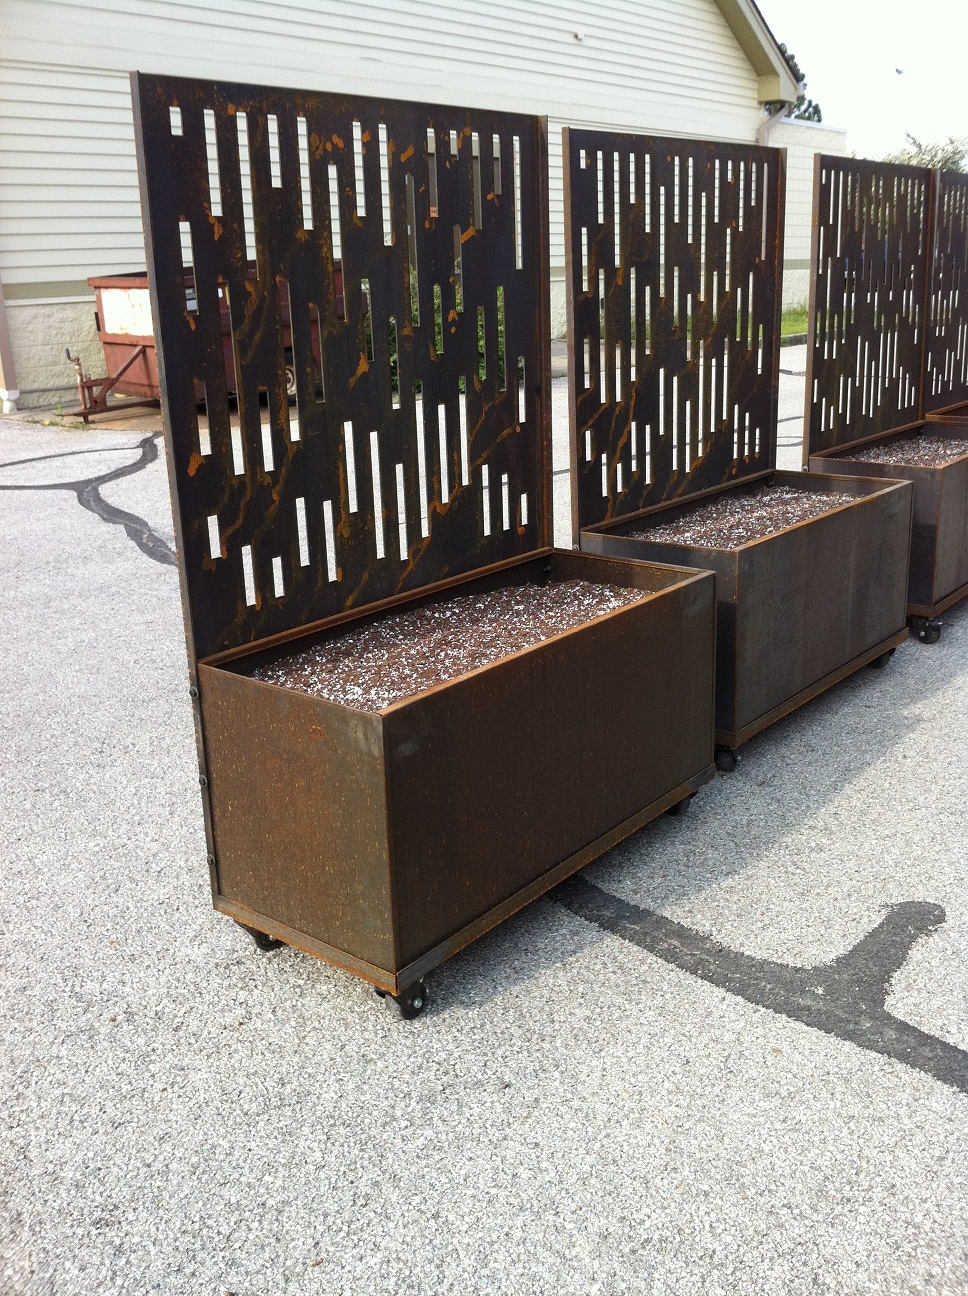 Here Are Some Of Our Nice Corten Planters On Casters With Screens Mounted To The Planter Box